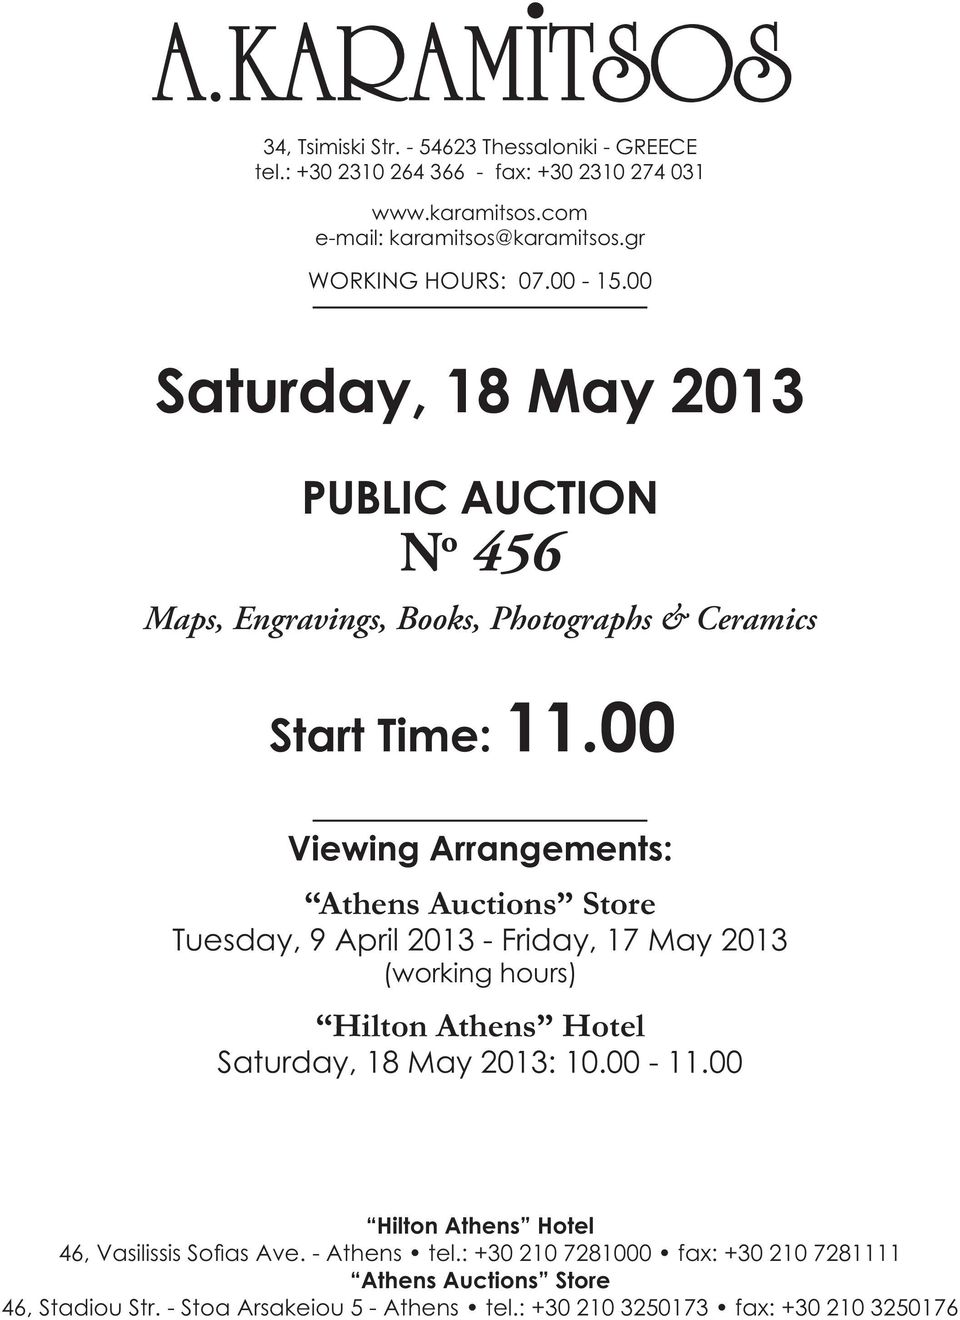 00 Viewing Arrangements: Athens Auctions Store Tuesday, 9 April 2013 - Friday, 17 ay 2013 (working hours) Hilton Athens Hotel Saturday, 18 ay 2013: 10.00-11.